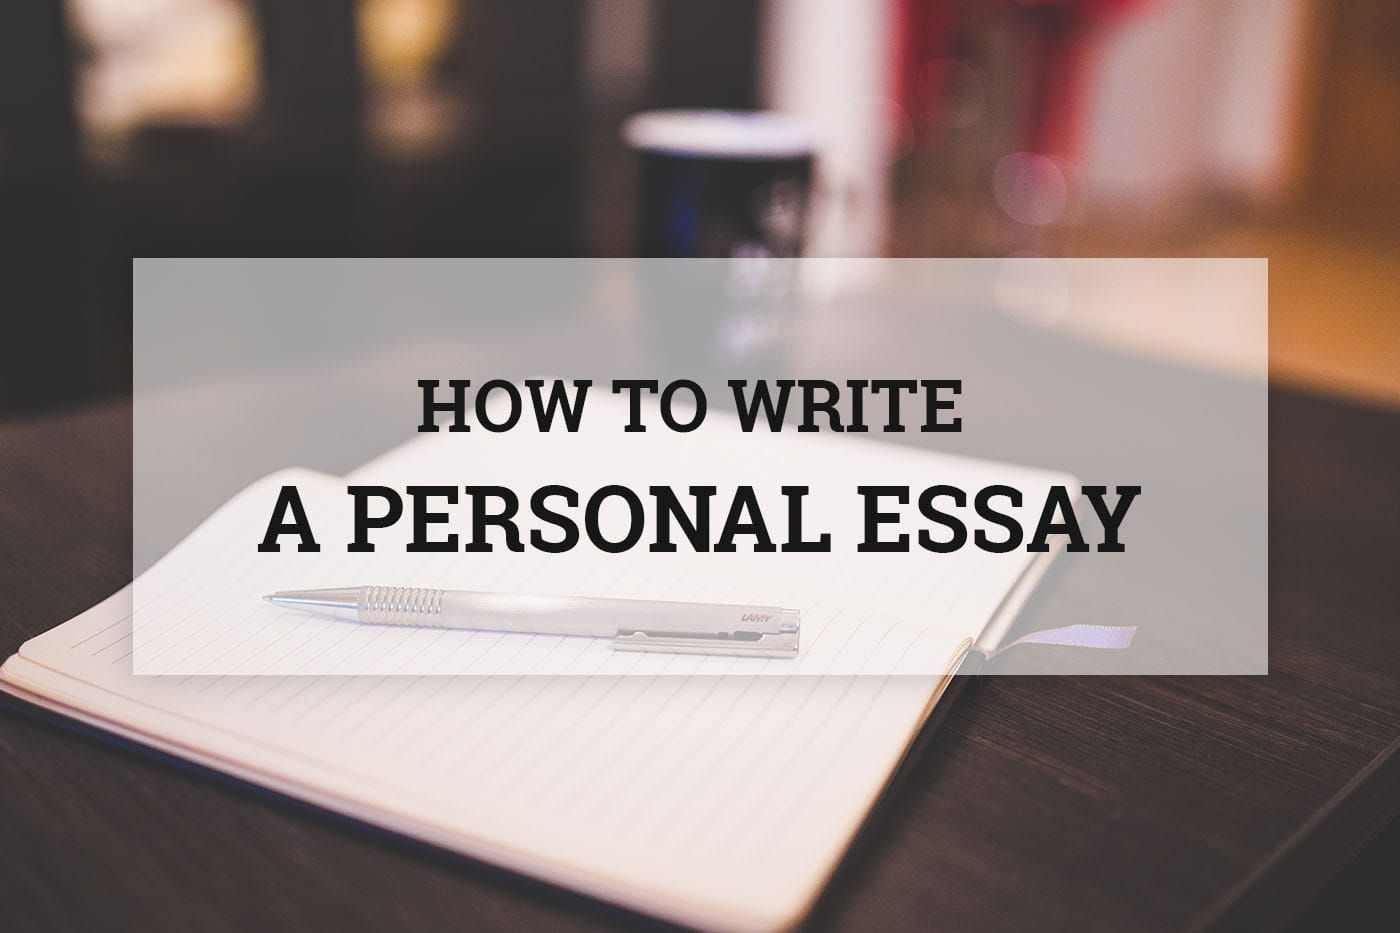 Personal Narrative Essay Writing Is One Of The Most Common  Personal Narrative Essay Writing Is One Of The Most Common Requirements For  The Students It Teaches Them To Take Life Experiences And Transform Them  Into